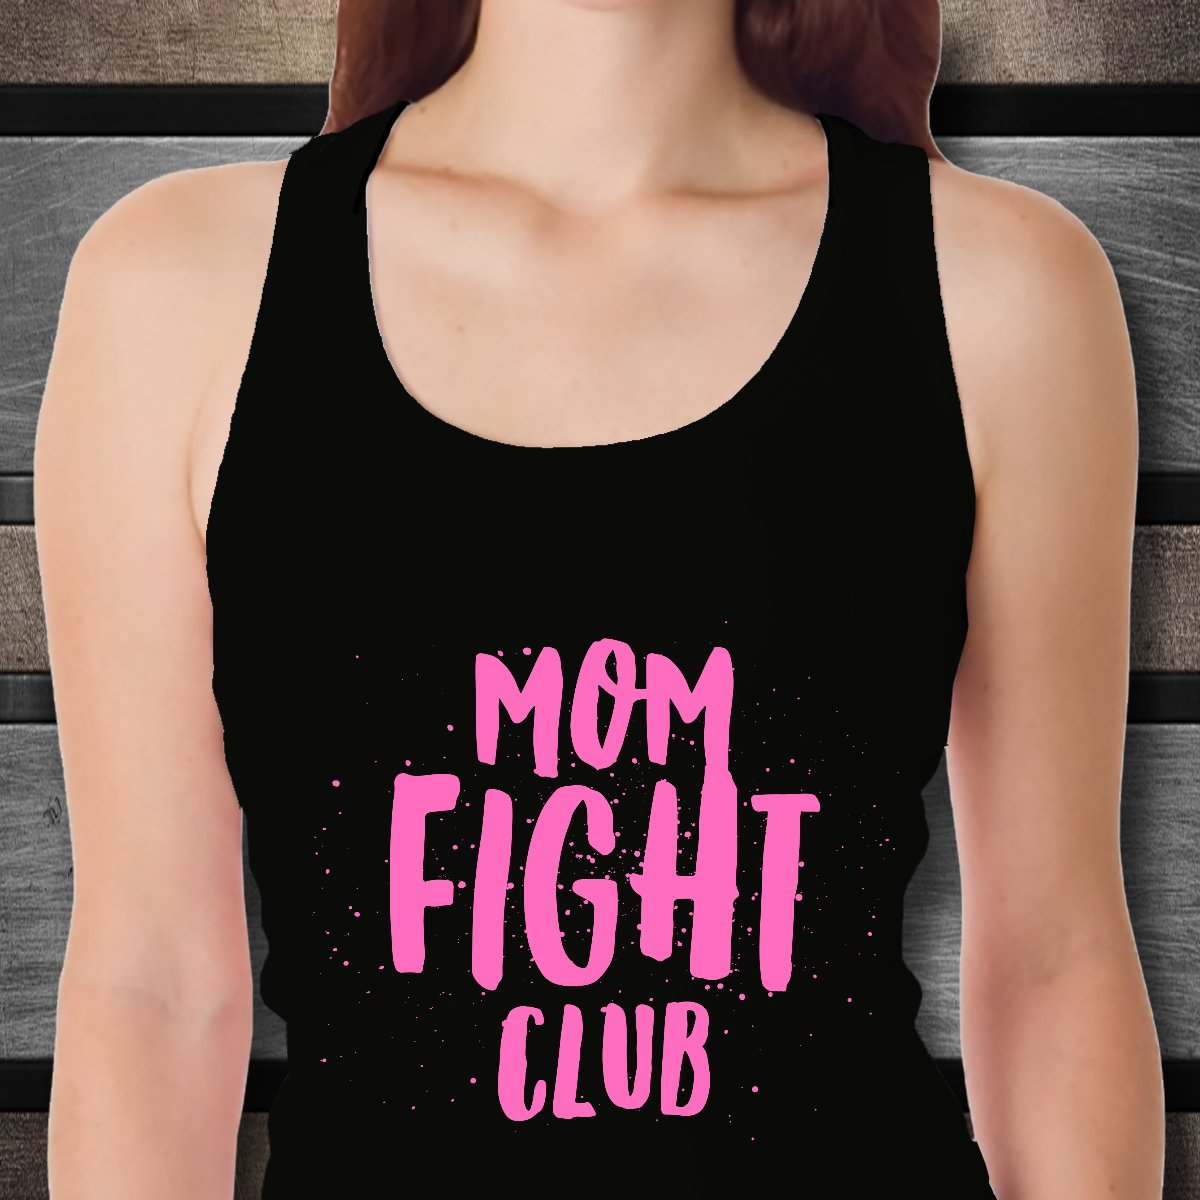 After last night, this is a slow #SundayMorning #DontTalkAbout #MomFightClub https://blue-olive-boutique.myshopify.com/products/mom-fight-club …